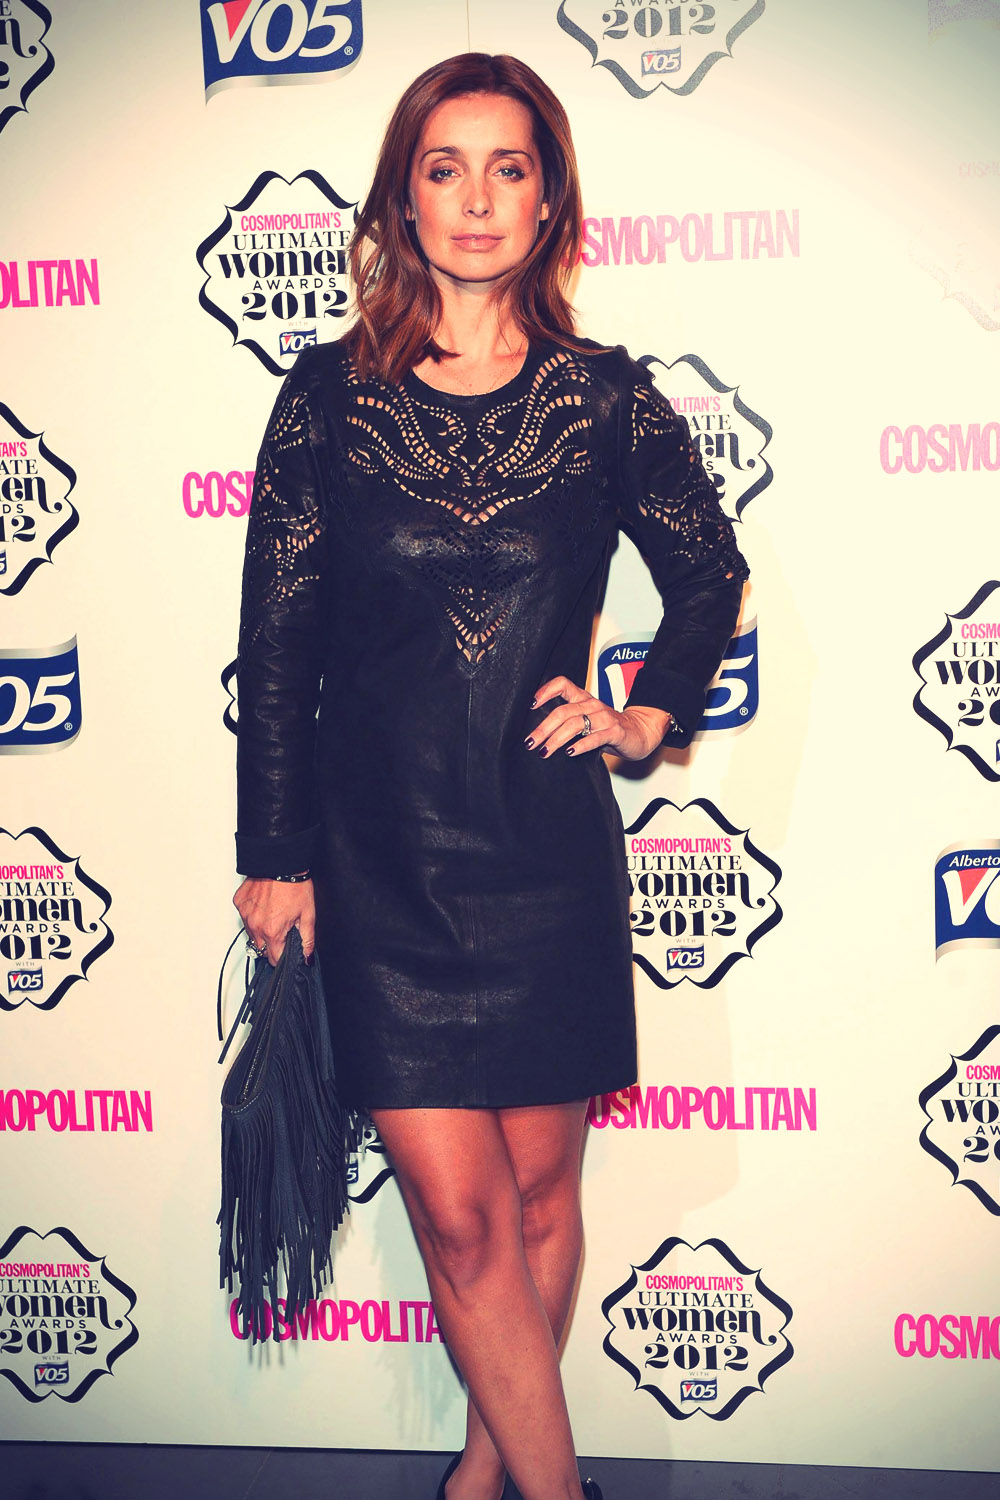 Louise Redknapp attends the Cosmopolitan Ultimate Woman of the Year awards